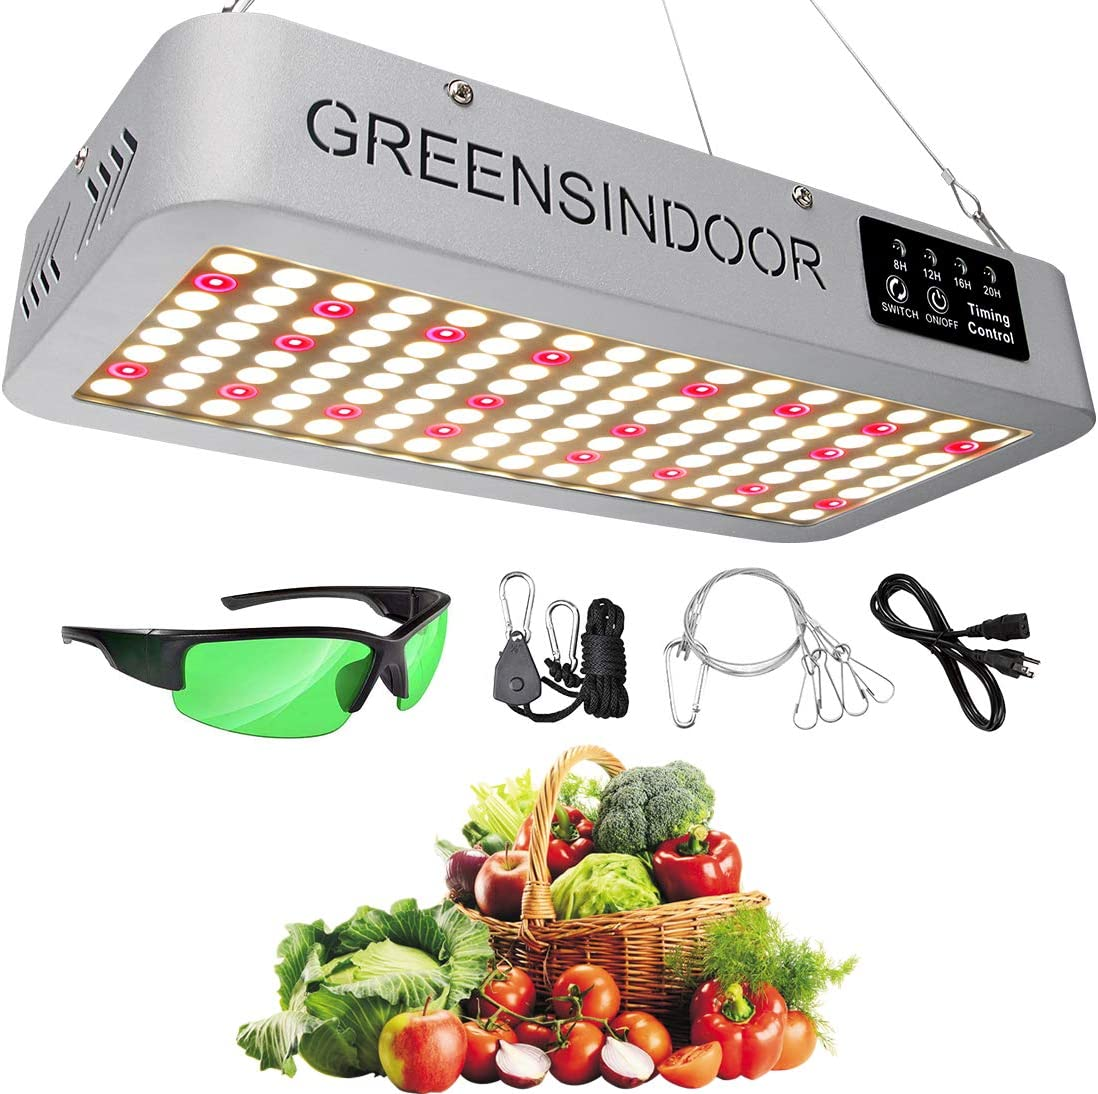 GREENSINDOOR 1500W Led Grow Light,Grow Lights for Indoor Plants,Upgrade Sunlight 3500K Plant Lamp for Indoor Plants Full Spectrum White and Red 660nm with Timer and Daisy Chain Function